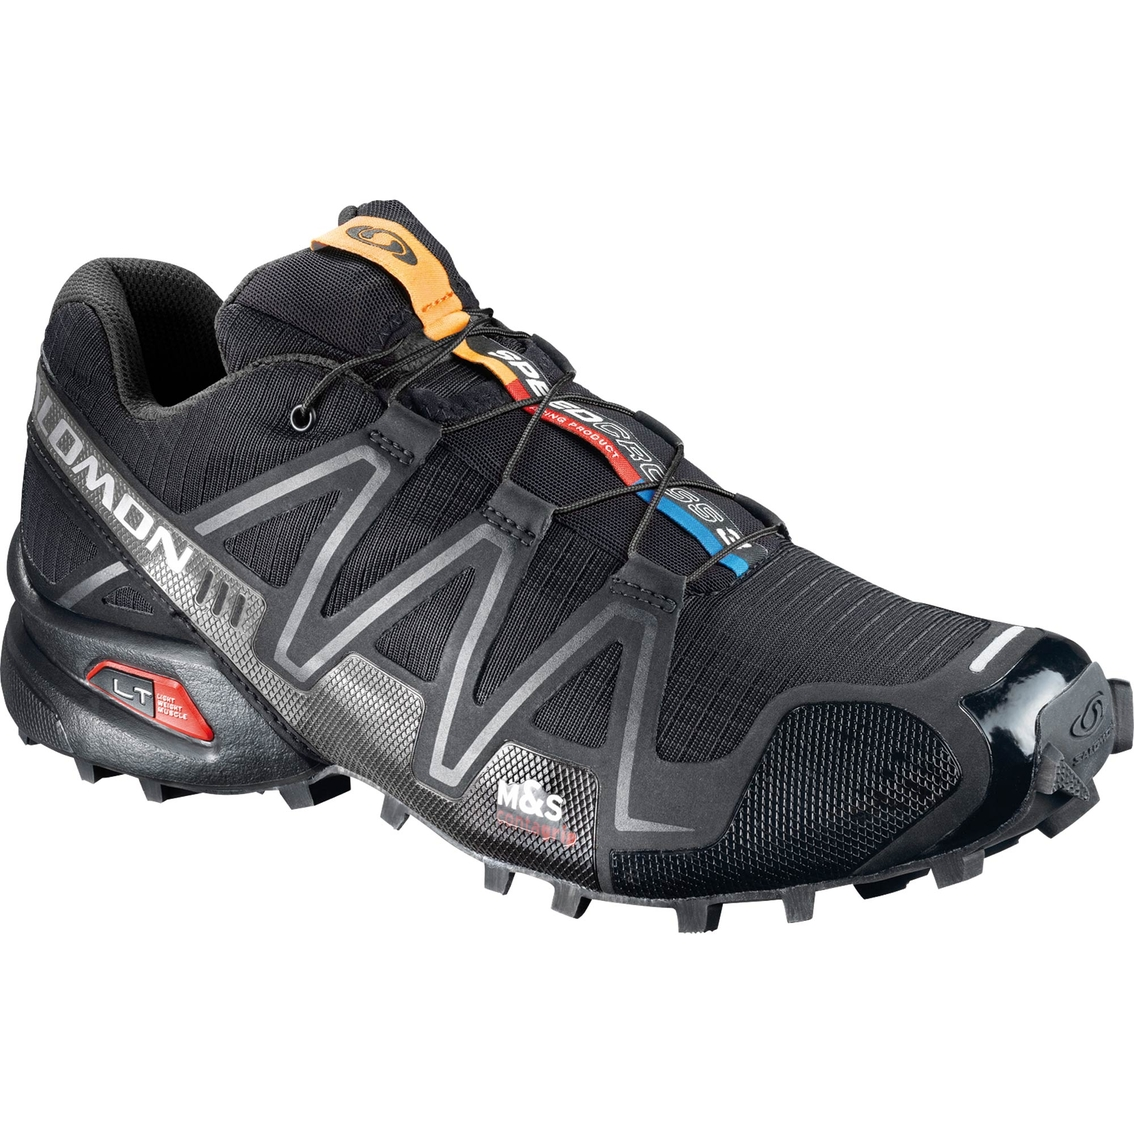 Salomon Men's Speedcross 3 Running Shoes | Hiking & Trail